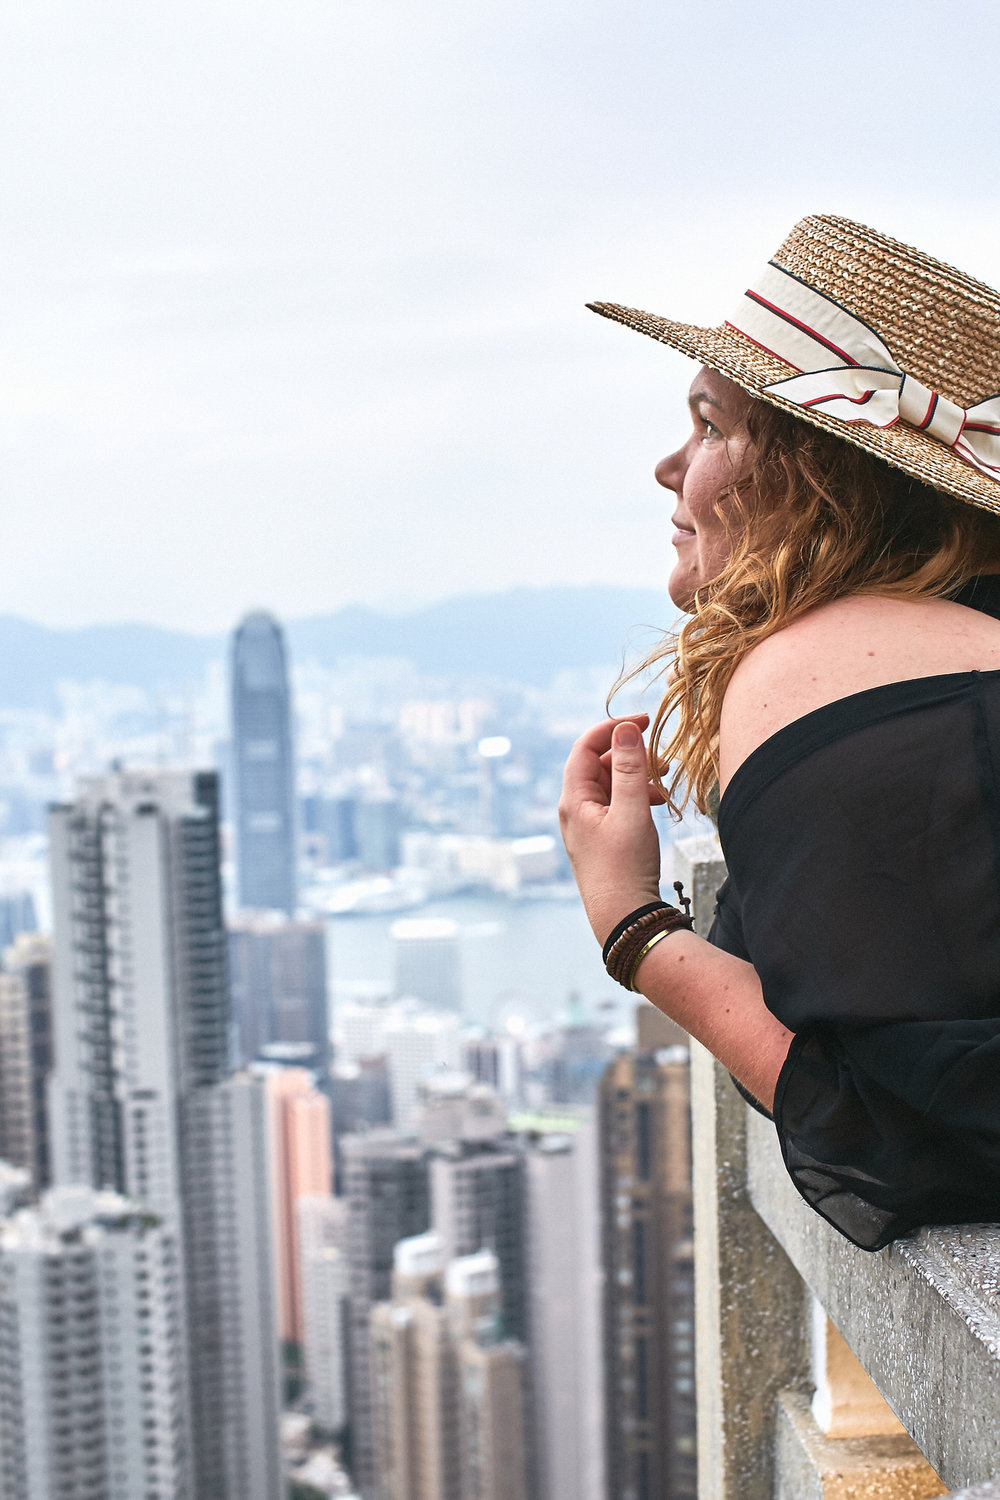 Veera in her favourite city, Hong Kong, on a campaign trip with FinnAir